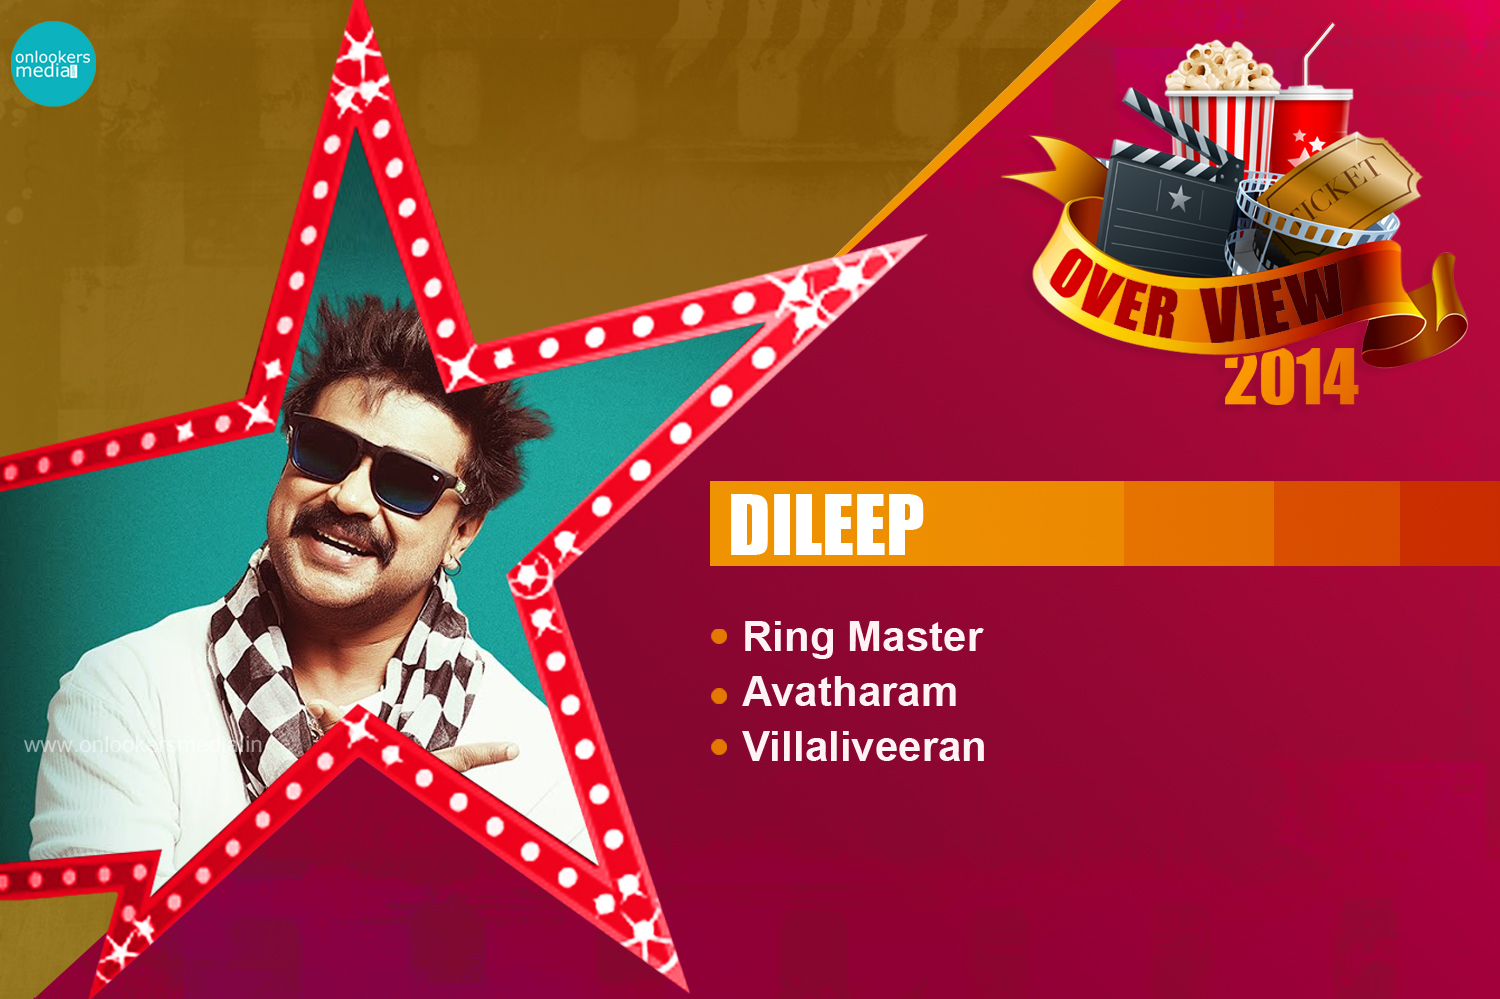 Dileep 2014 Overview-Report-Hit Flop Movie List-Ring Master-Avatharam-Villali Veeran-Onlookers Media